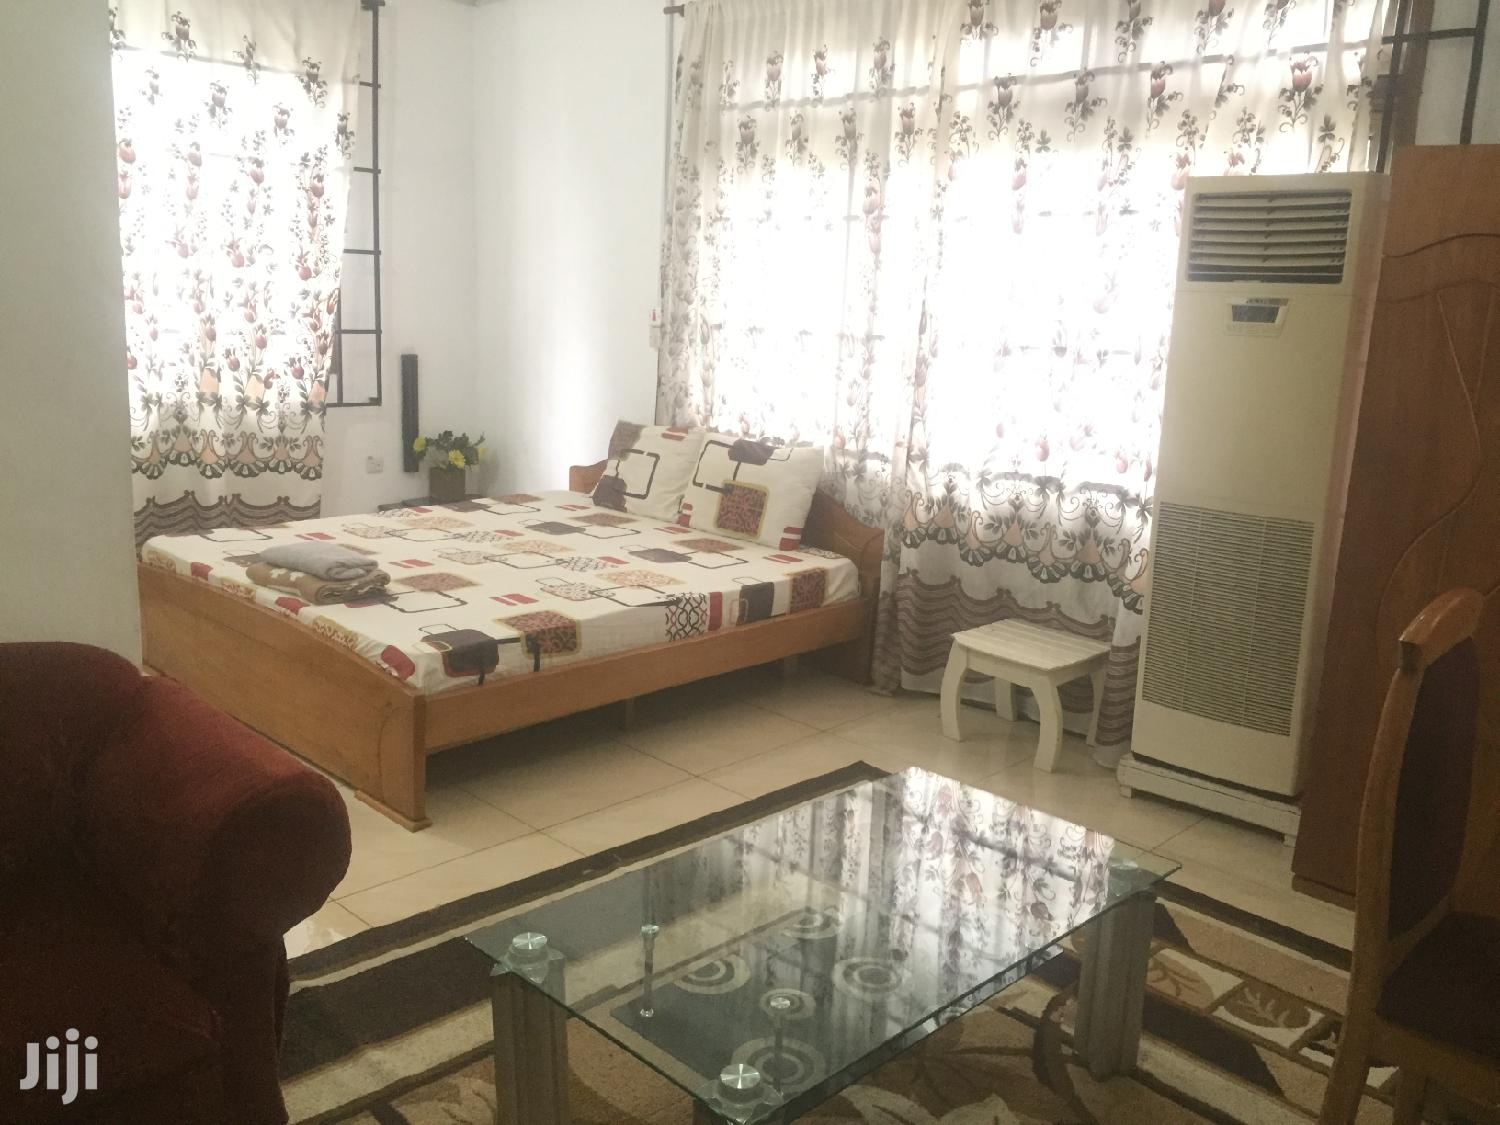 1-2 Roomed Ensuits for Rent Rigde Accra   Houses & Apartments For Rent for sale in Accra Metropolitan, Greater Accra, Ghana